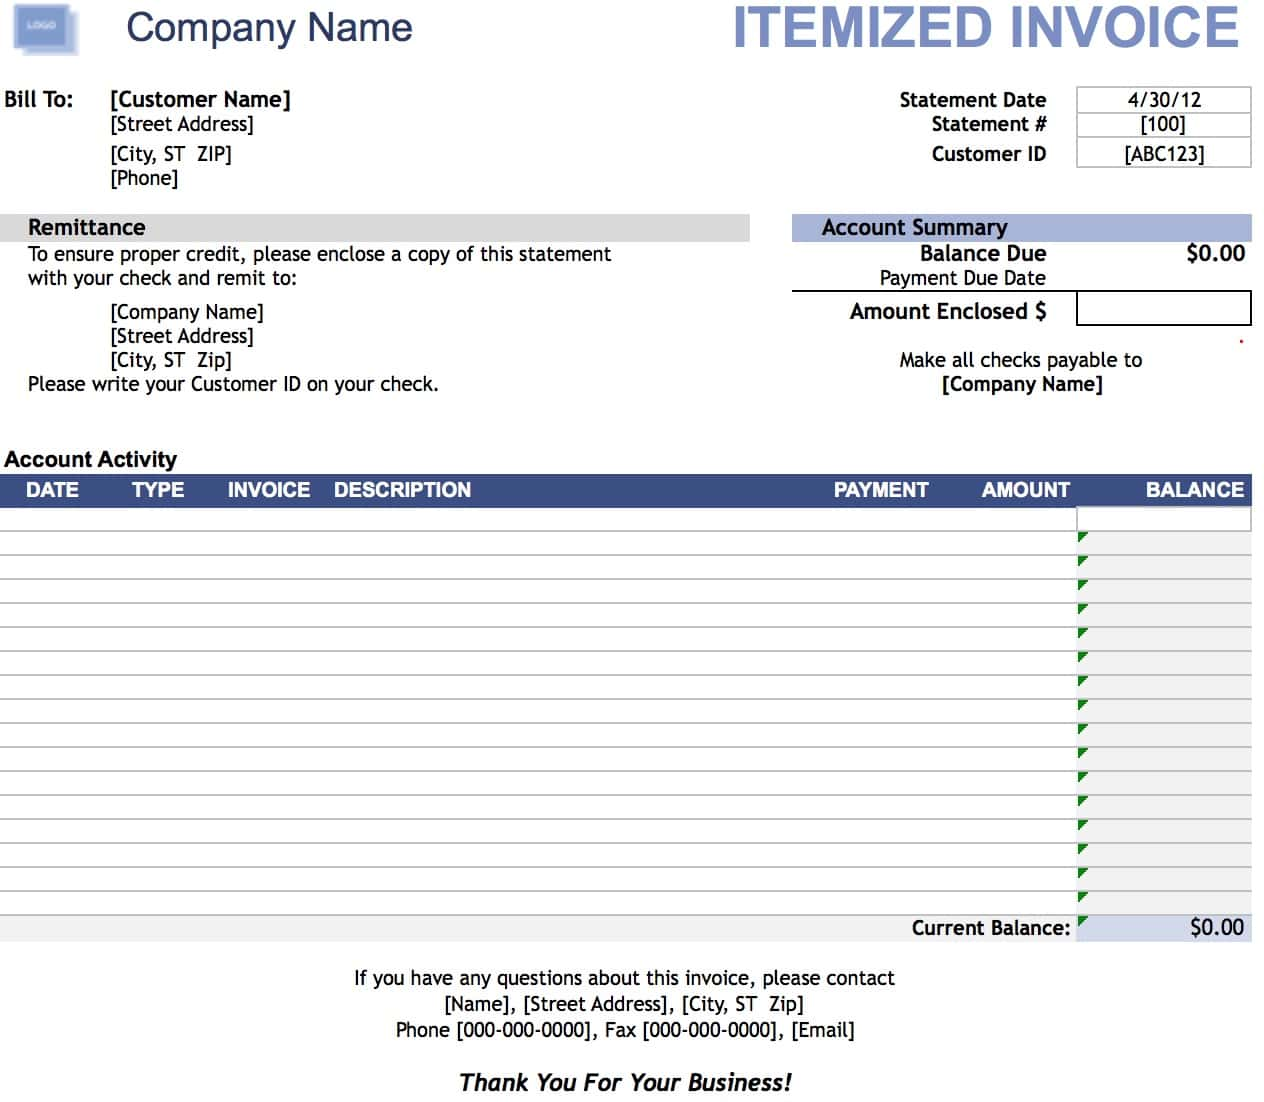 Invoice Home And Invoice Maker Free